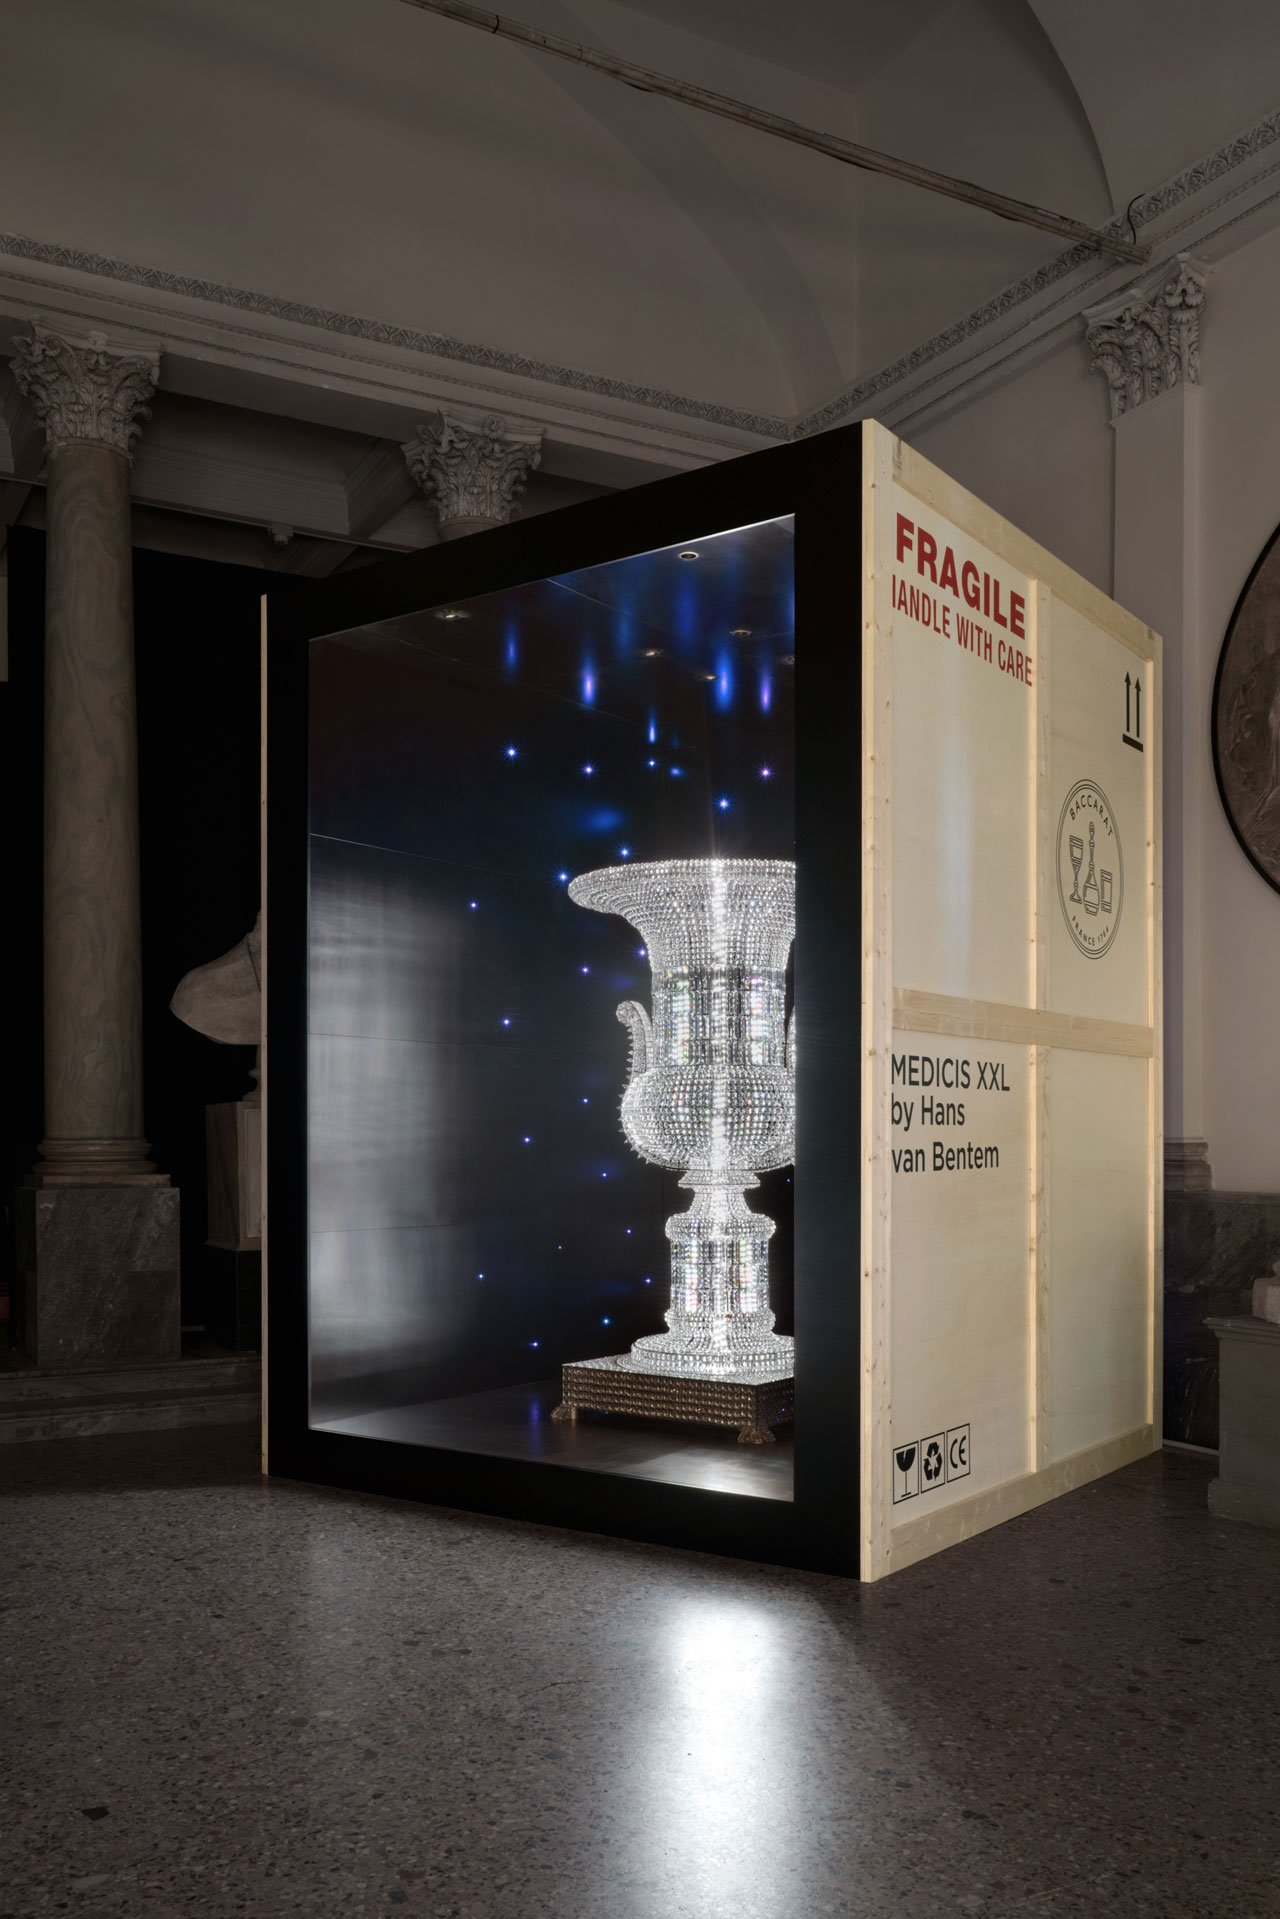 Lumières out of the boxinstallation view atthe Fine Arts Academy of Brera featuringMedicis XXL byHans Van Bentem, an authentic masterpiece made of 13.000 octagons, translating the original marble Medicis vase of the classical period and its crystal version made byBaccaratin 1909.